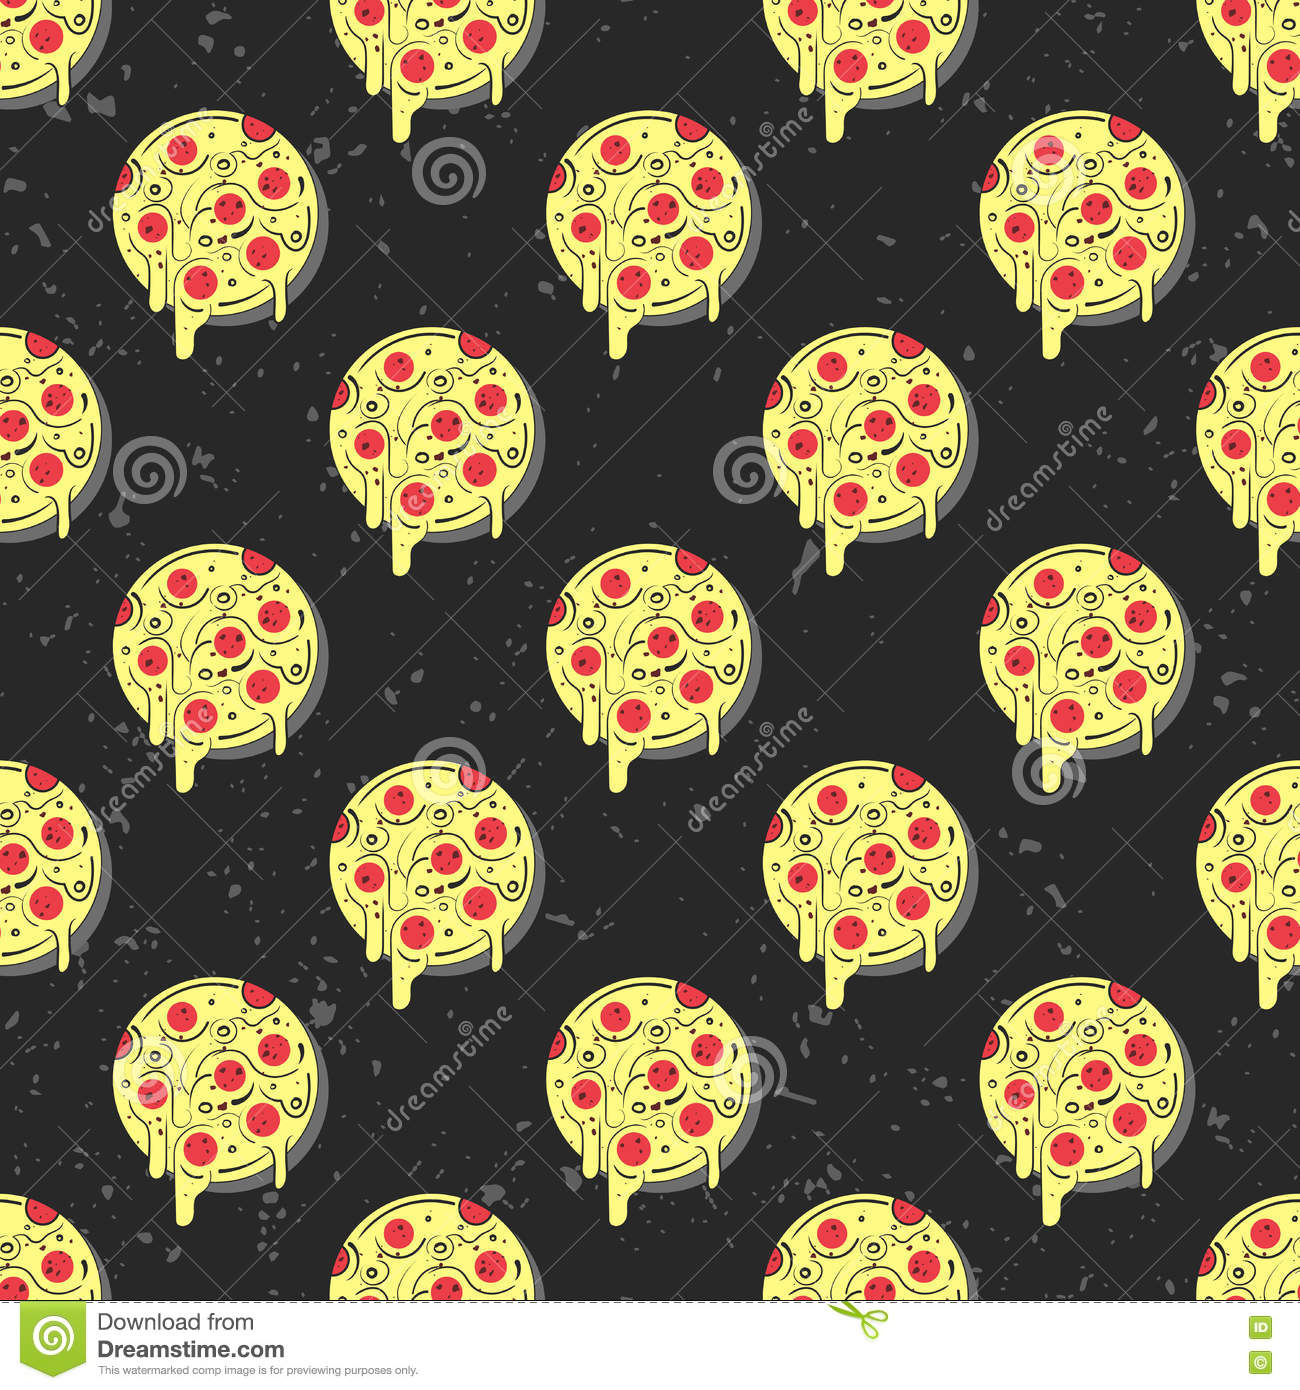 repeating pizza background - photo #2